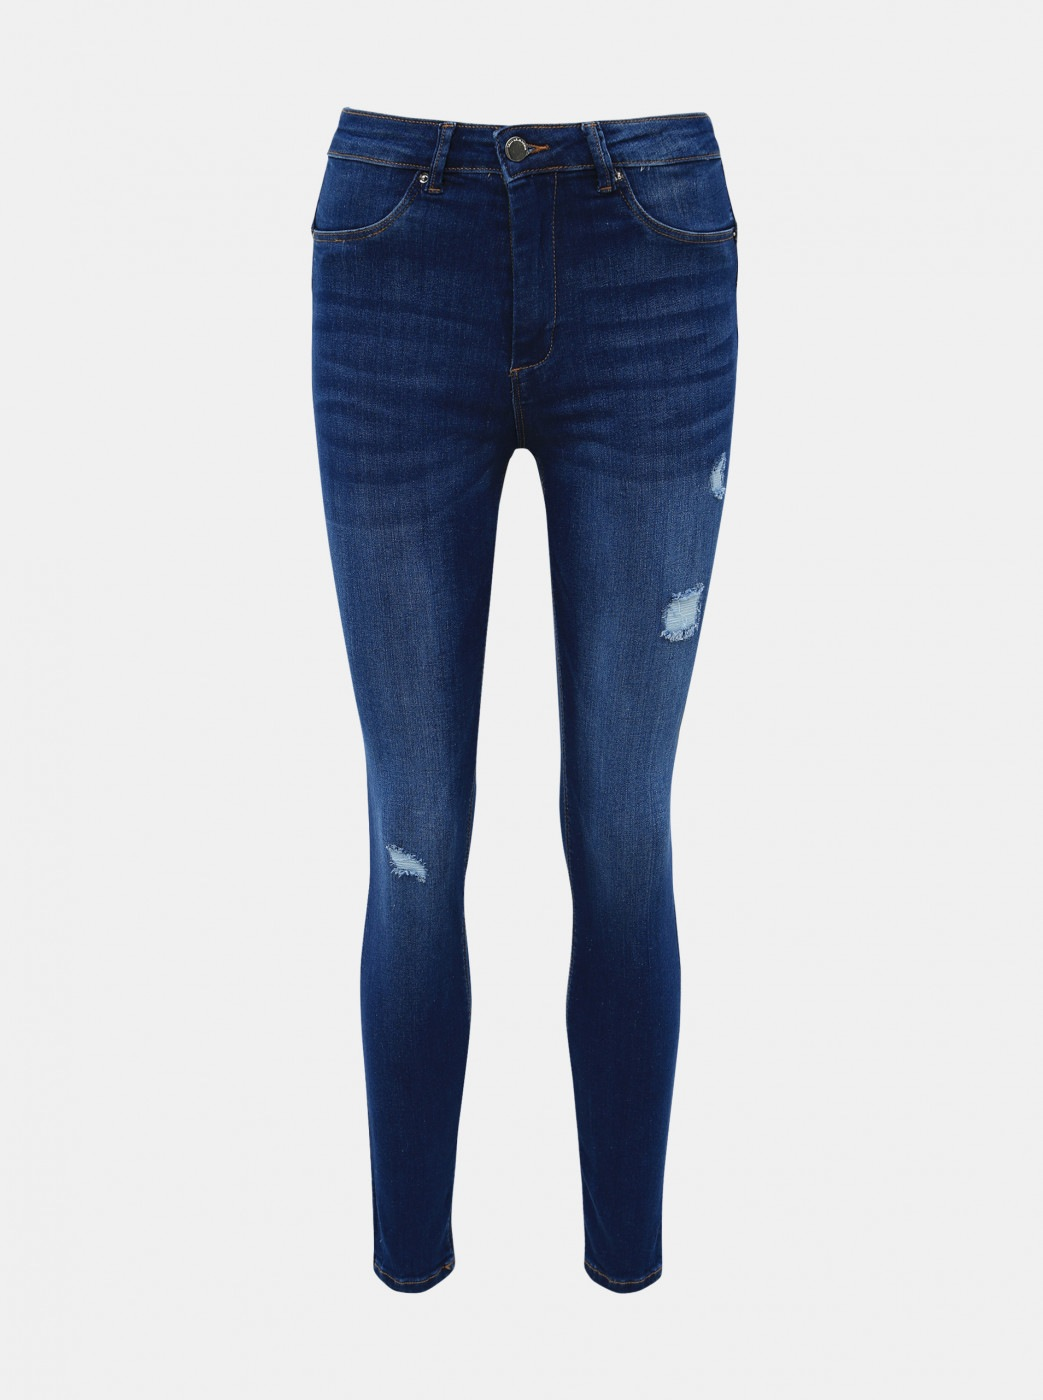 Blue Shortened Push up Skinny Fit Jeans TALLY WEiJL Pump